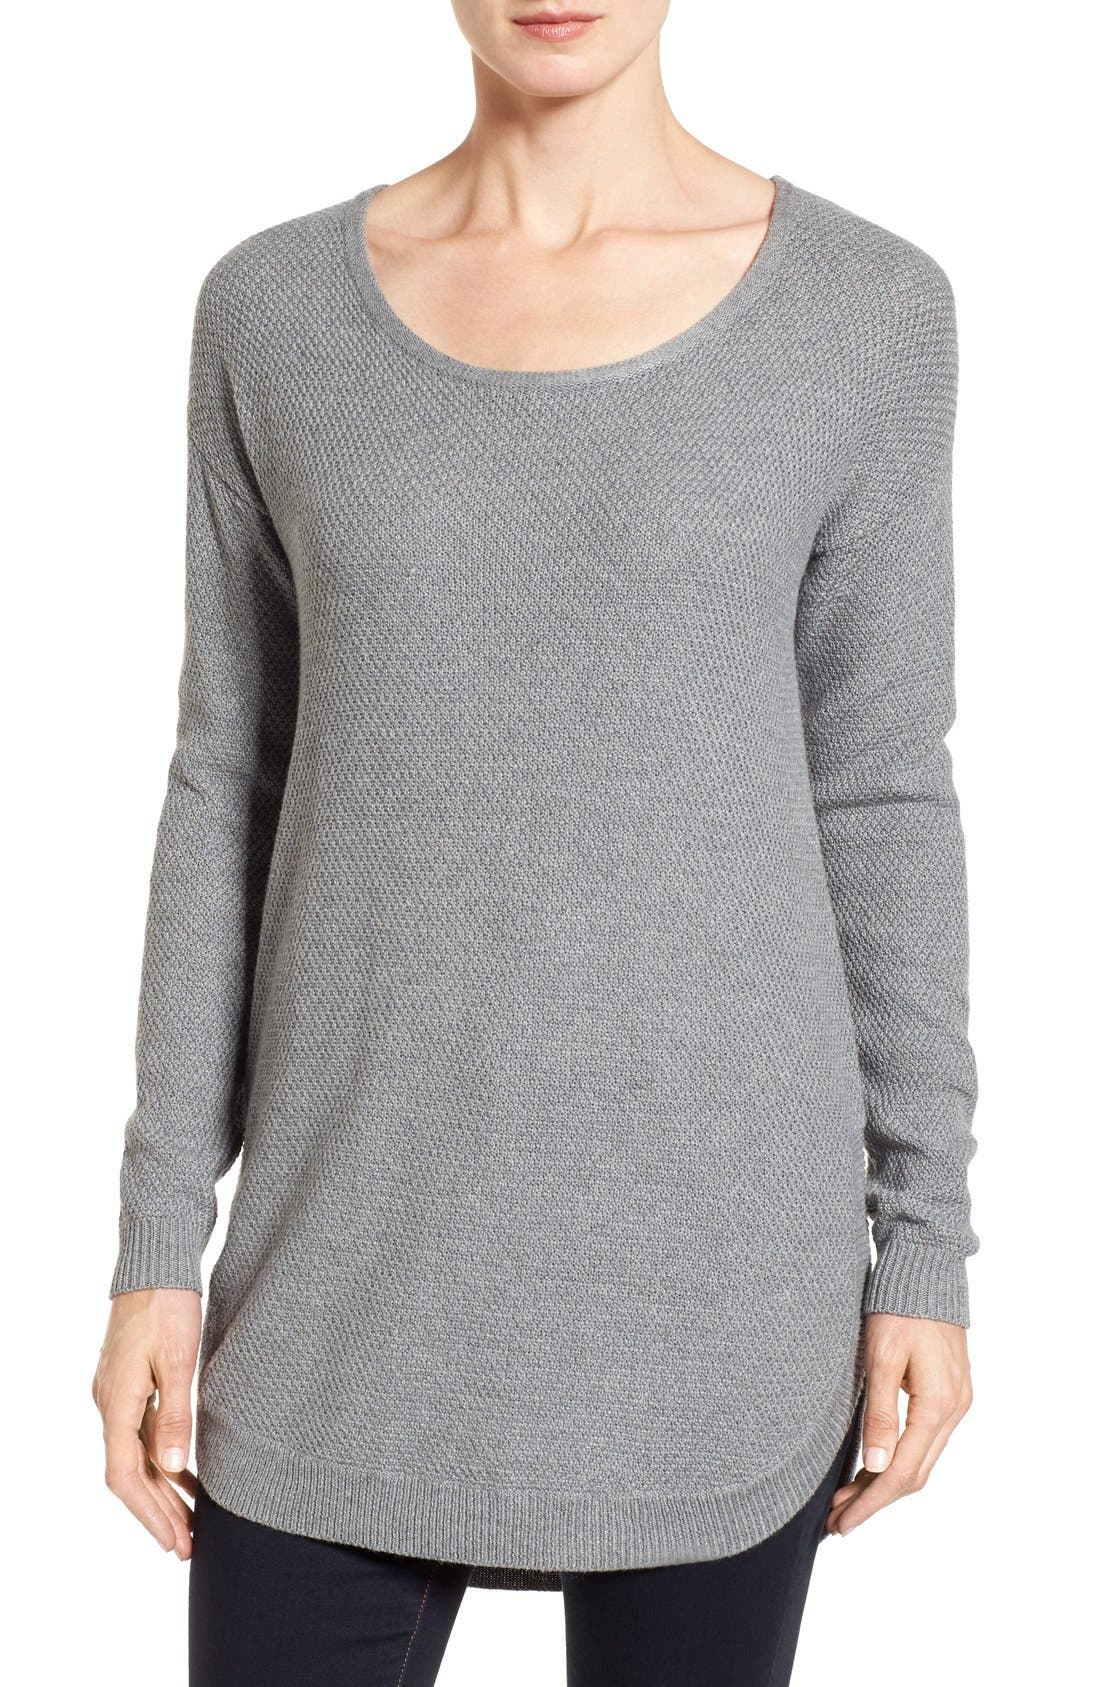 Texture Knit Tunic,                         Main,                         color, Grey Texture Pattern